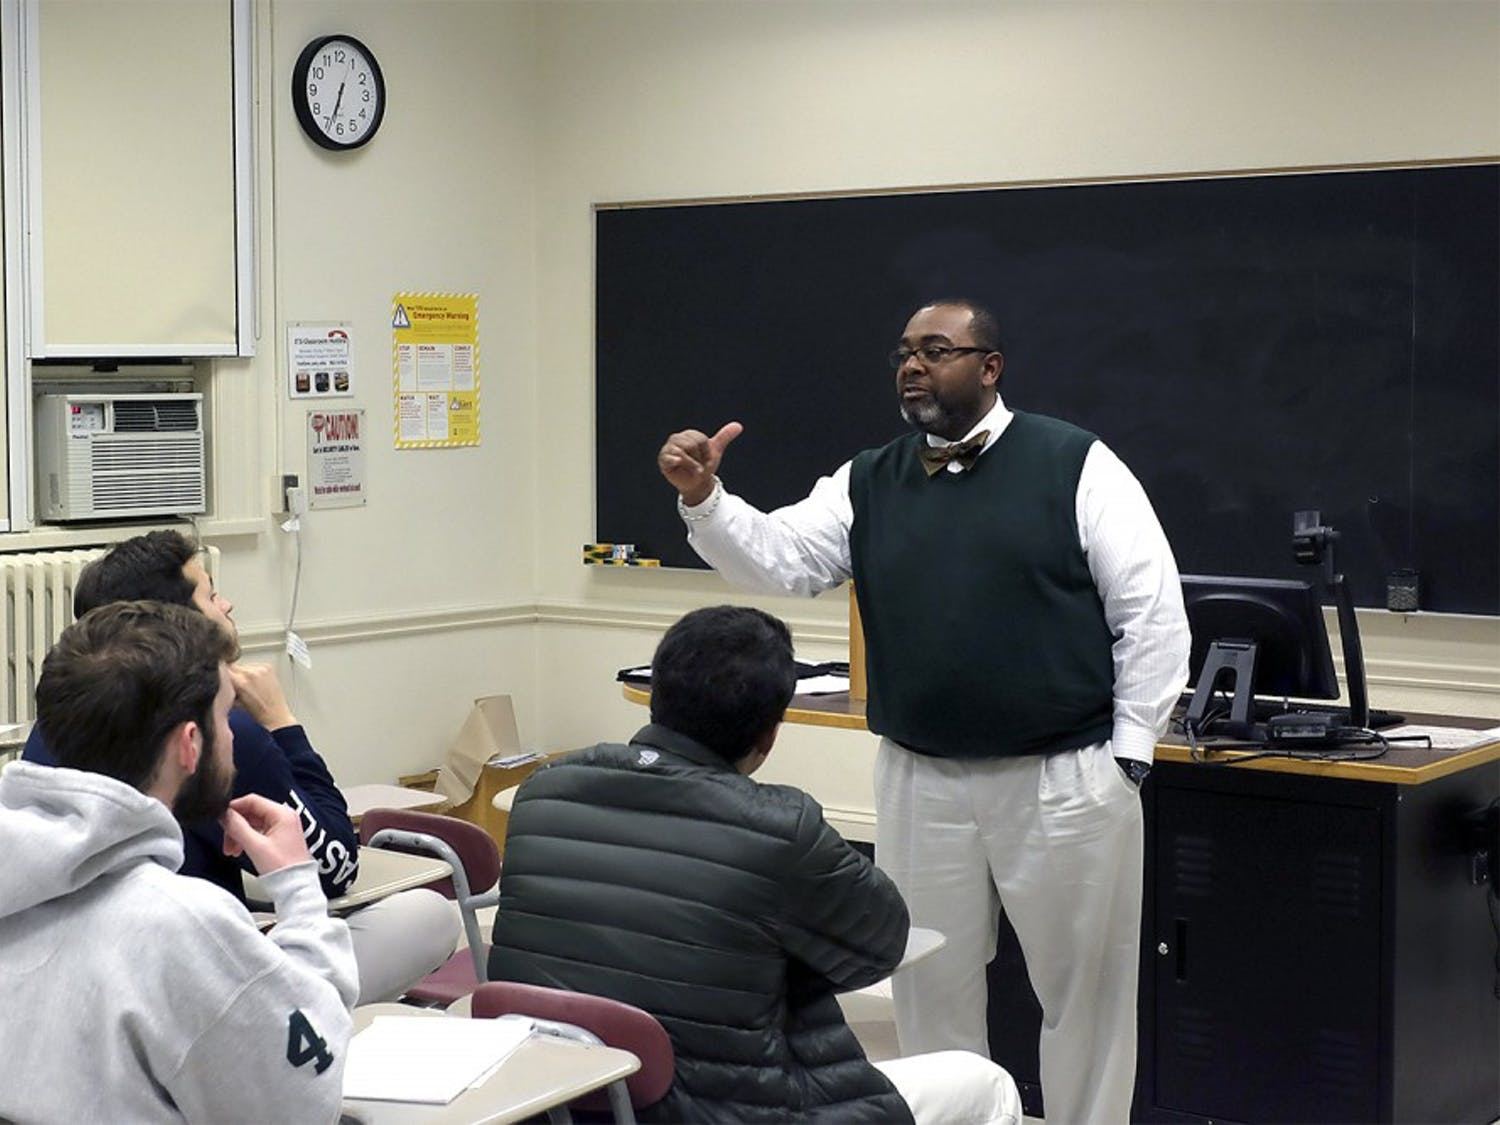 Ion Outterbridge, the coordinator of the Office of Fraternity & Sorority Life and Community Involvement, speaks to the presidents and risk managers of UNC's fraternities.